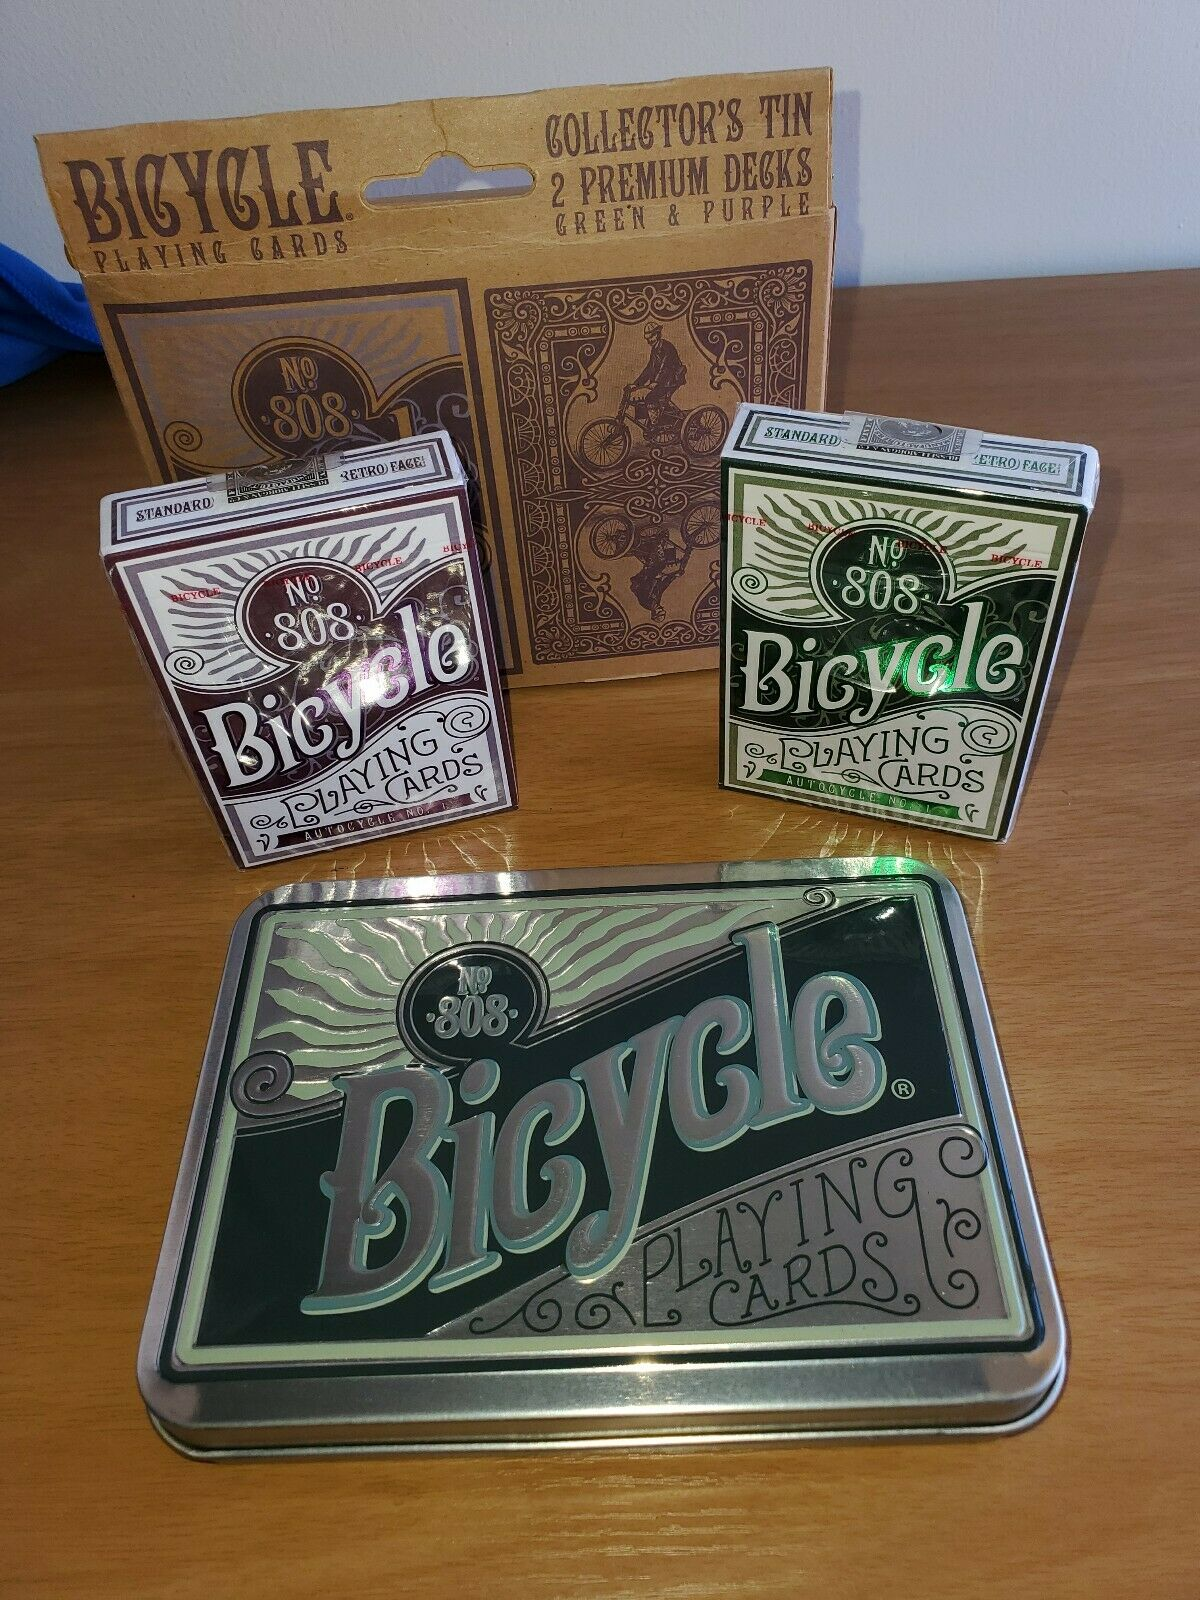 Bicycle Collector/'s Tin Contains 2 Premium Playing Card Decks Purple n Green